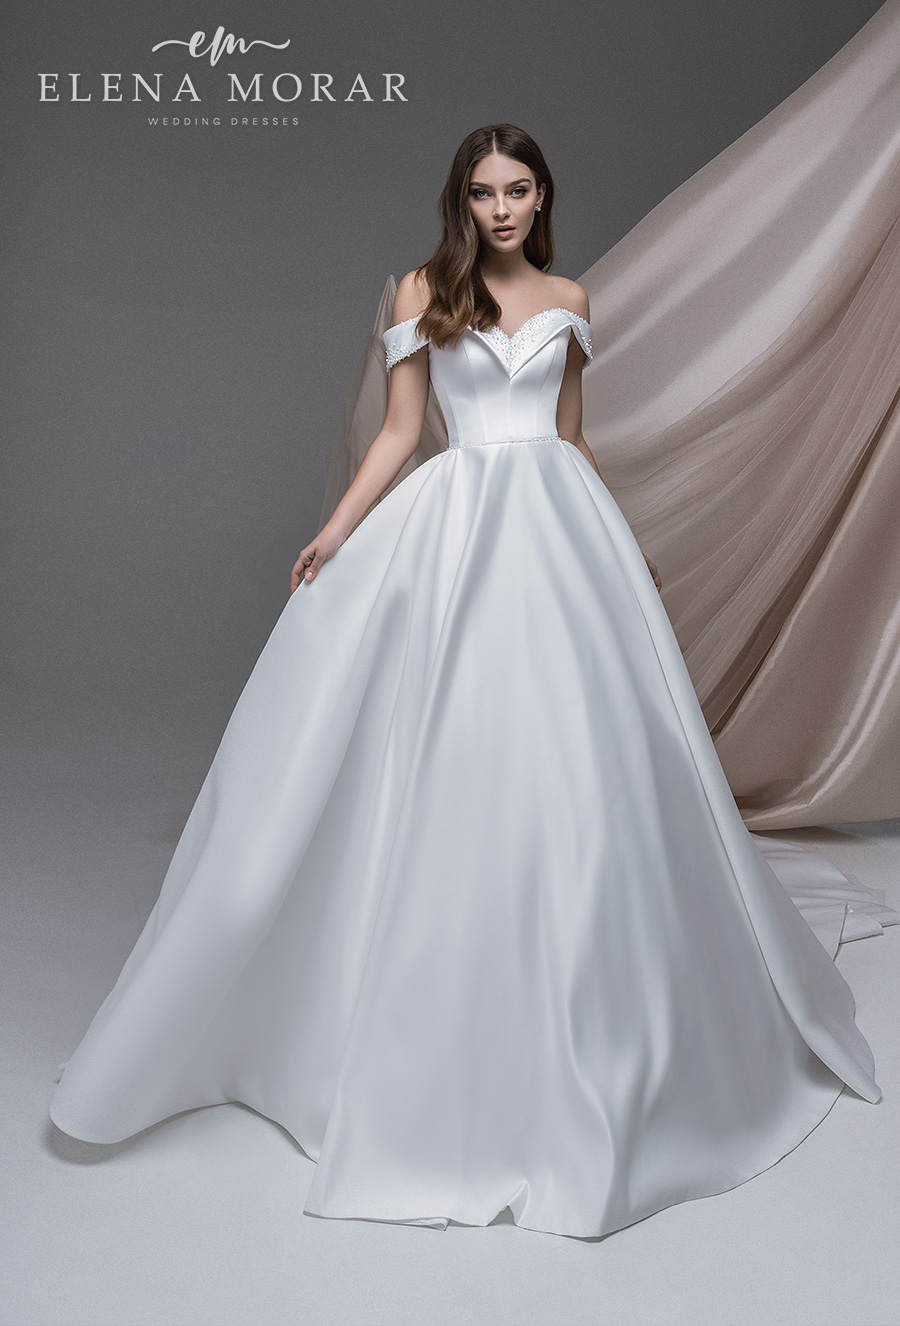 elena morar 2021 desert rose bridal off shoulder v neck simple minimalist elegant princess ball gown a line wedding dress mid back chapel train (007) mv